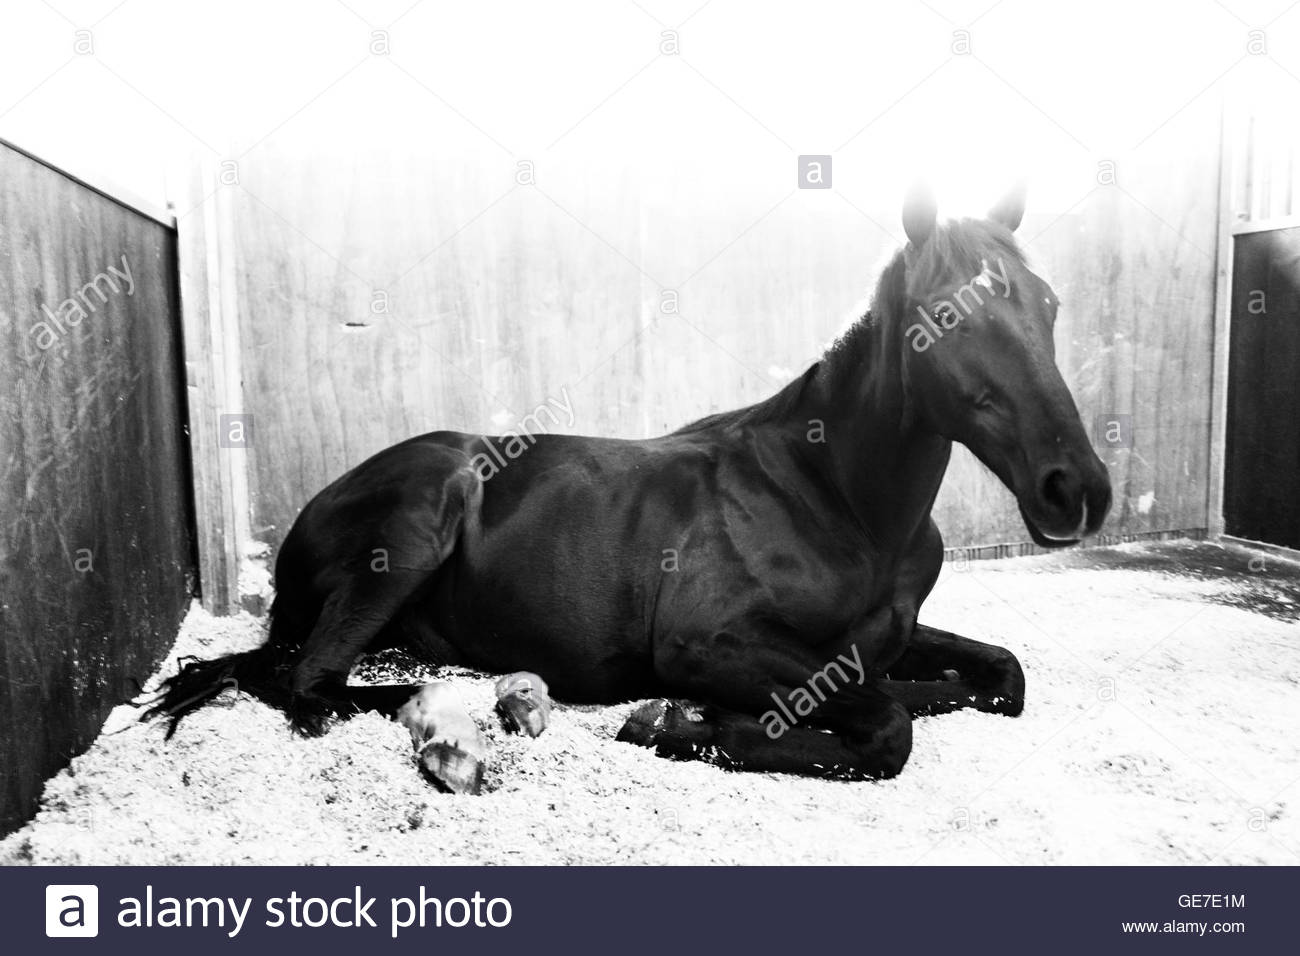 Strip End, Camptown, Jedburgh, Scottish Borders, UK. 22nd July 2016. Racehorses enjoy home comforts at the stables - Stock Image